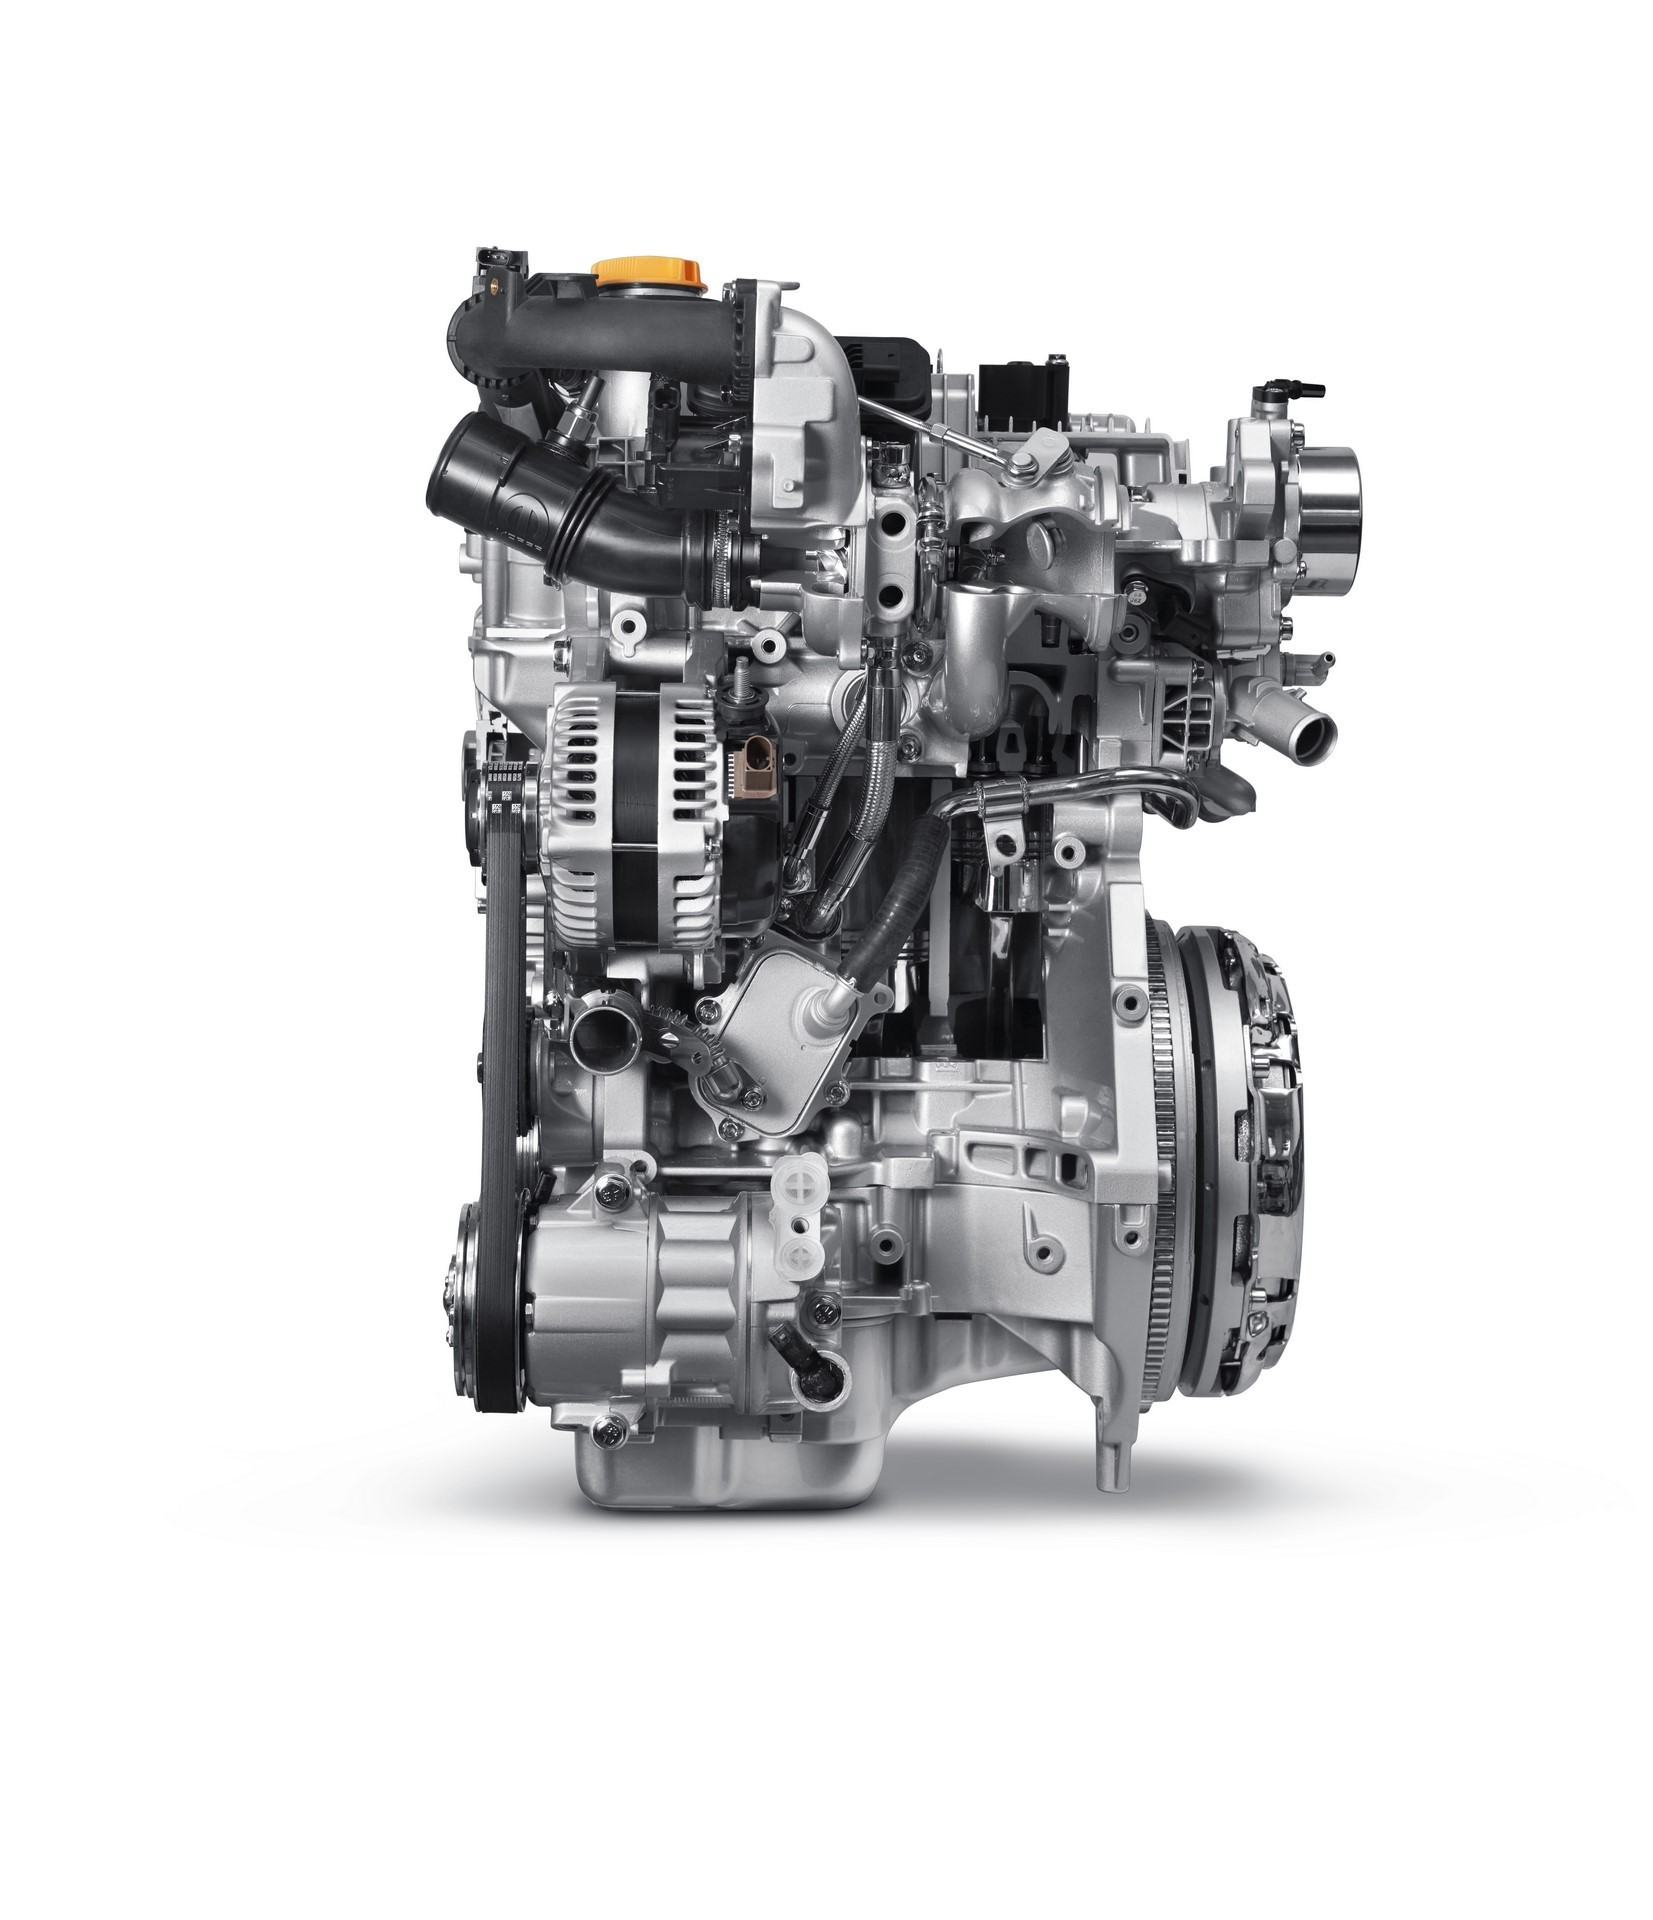 180828_Fiat_New-10L-Turbo-3-cylinder-120HP_03